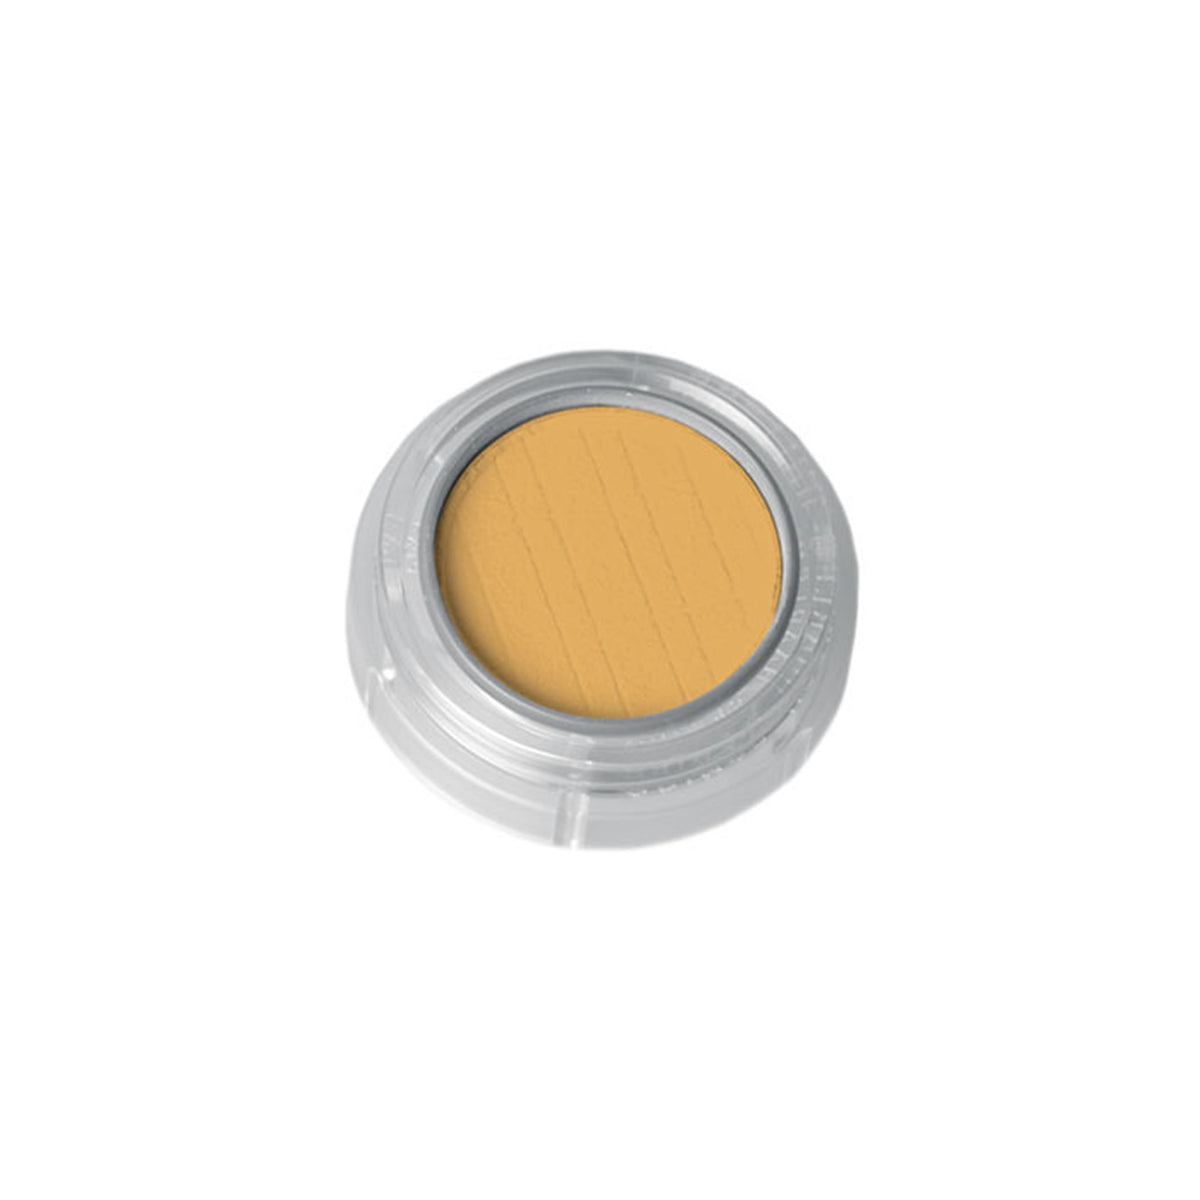 Grimas Pressed Powder Eyeshadow/Rouge - 282 Orangey Yellow - Red Carpet FX - Professional Makeup